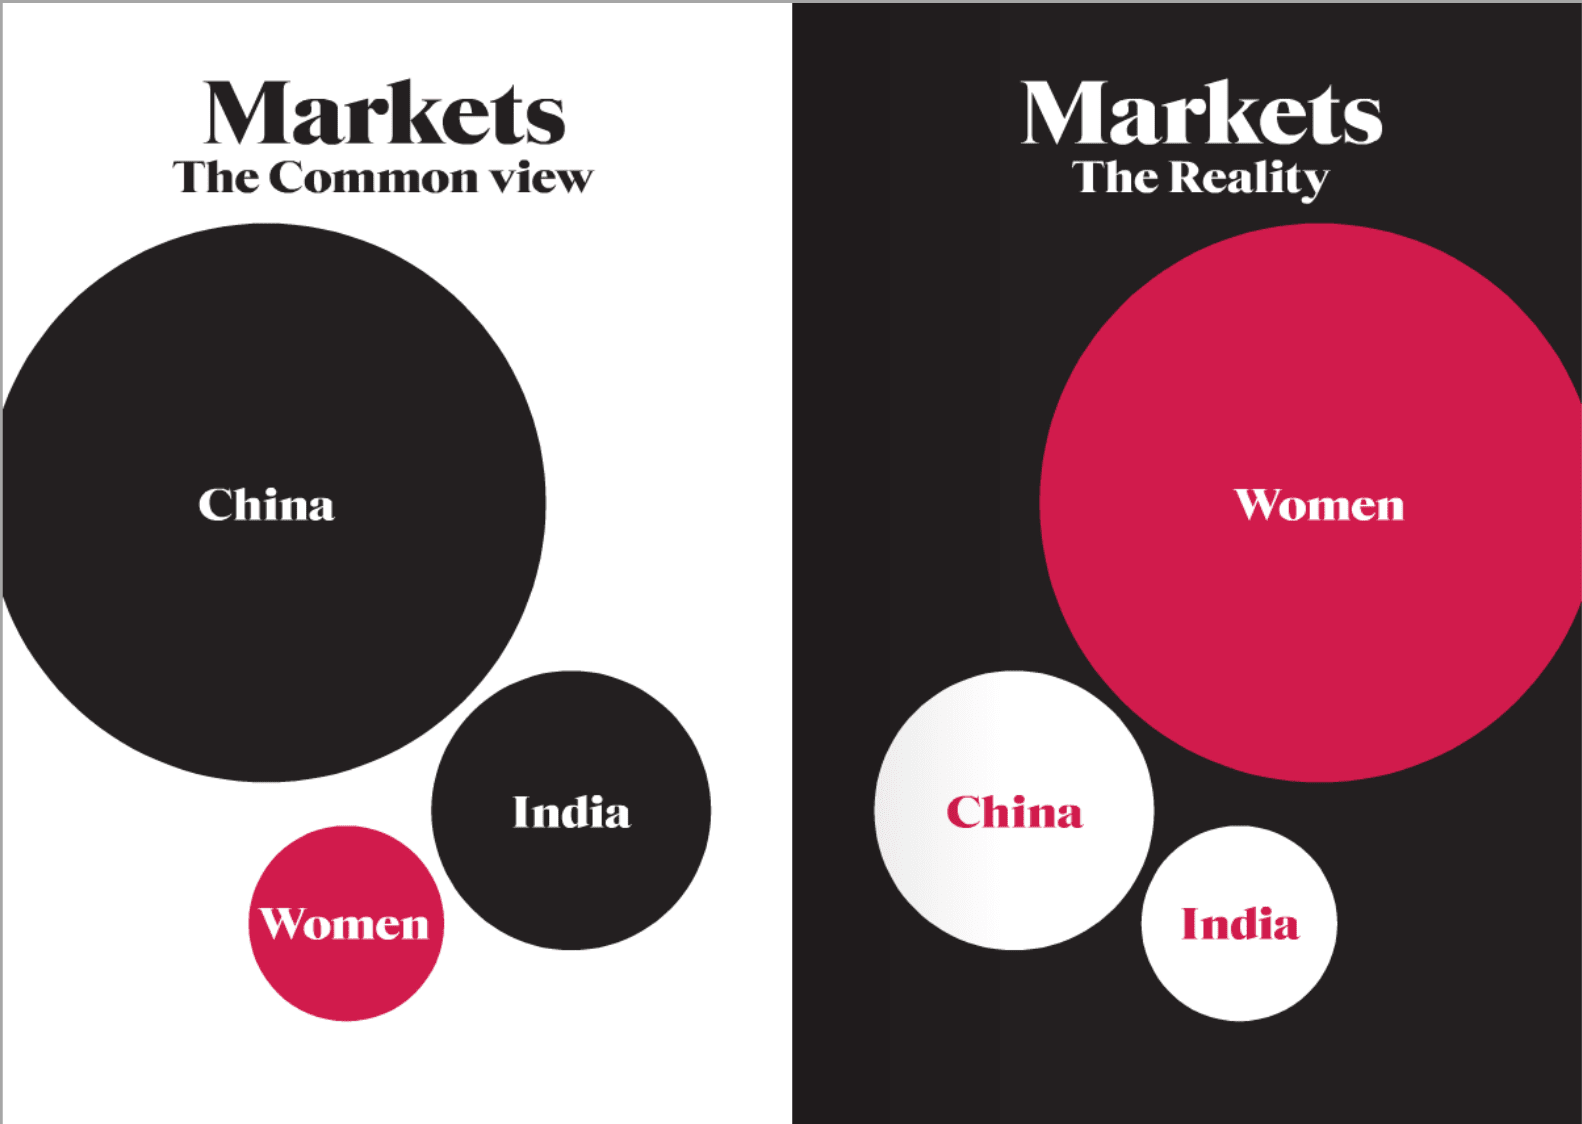 Women make up a larger emerging market than China.